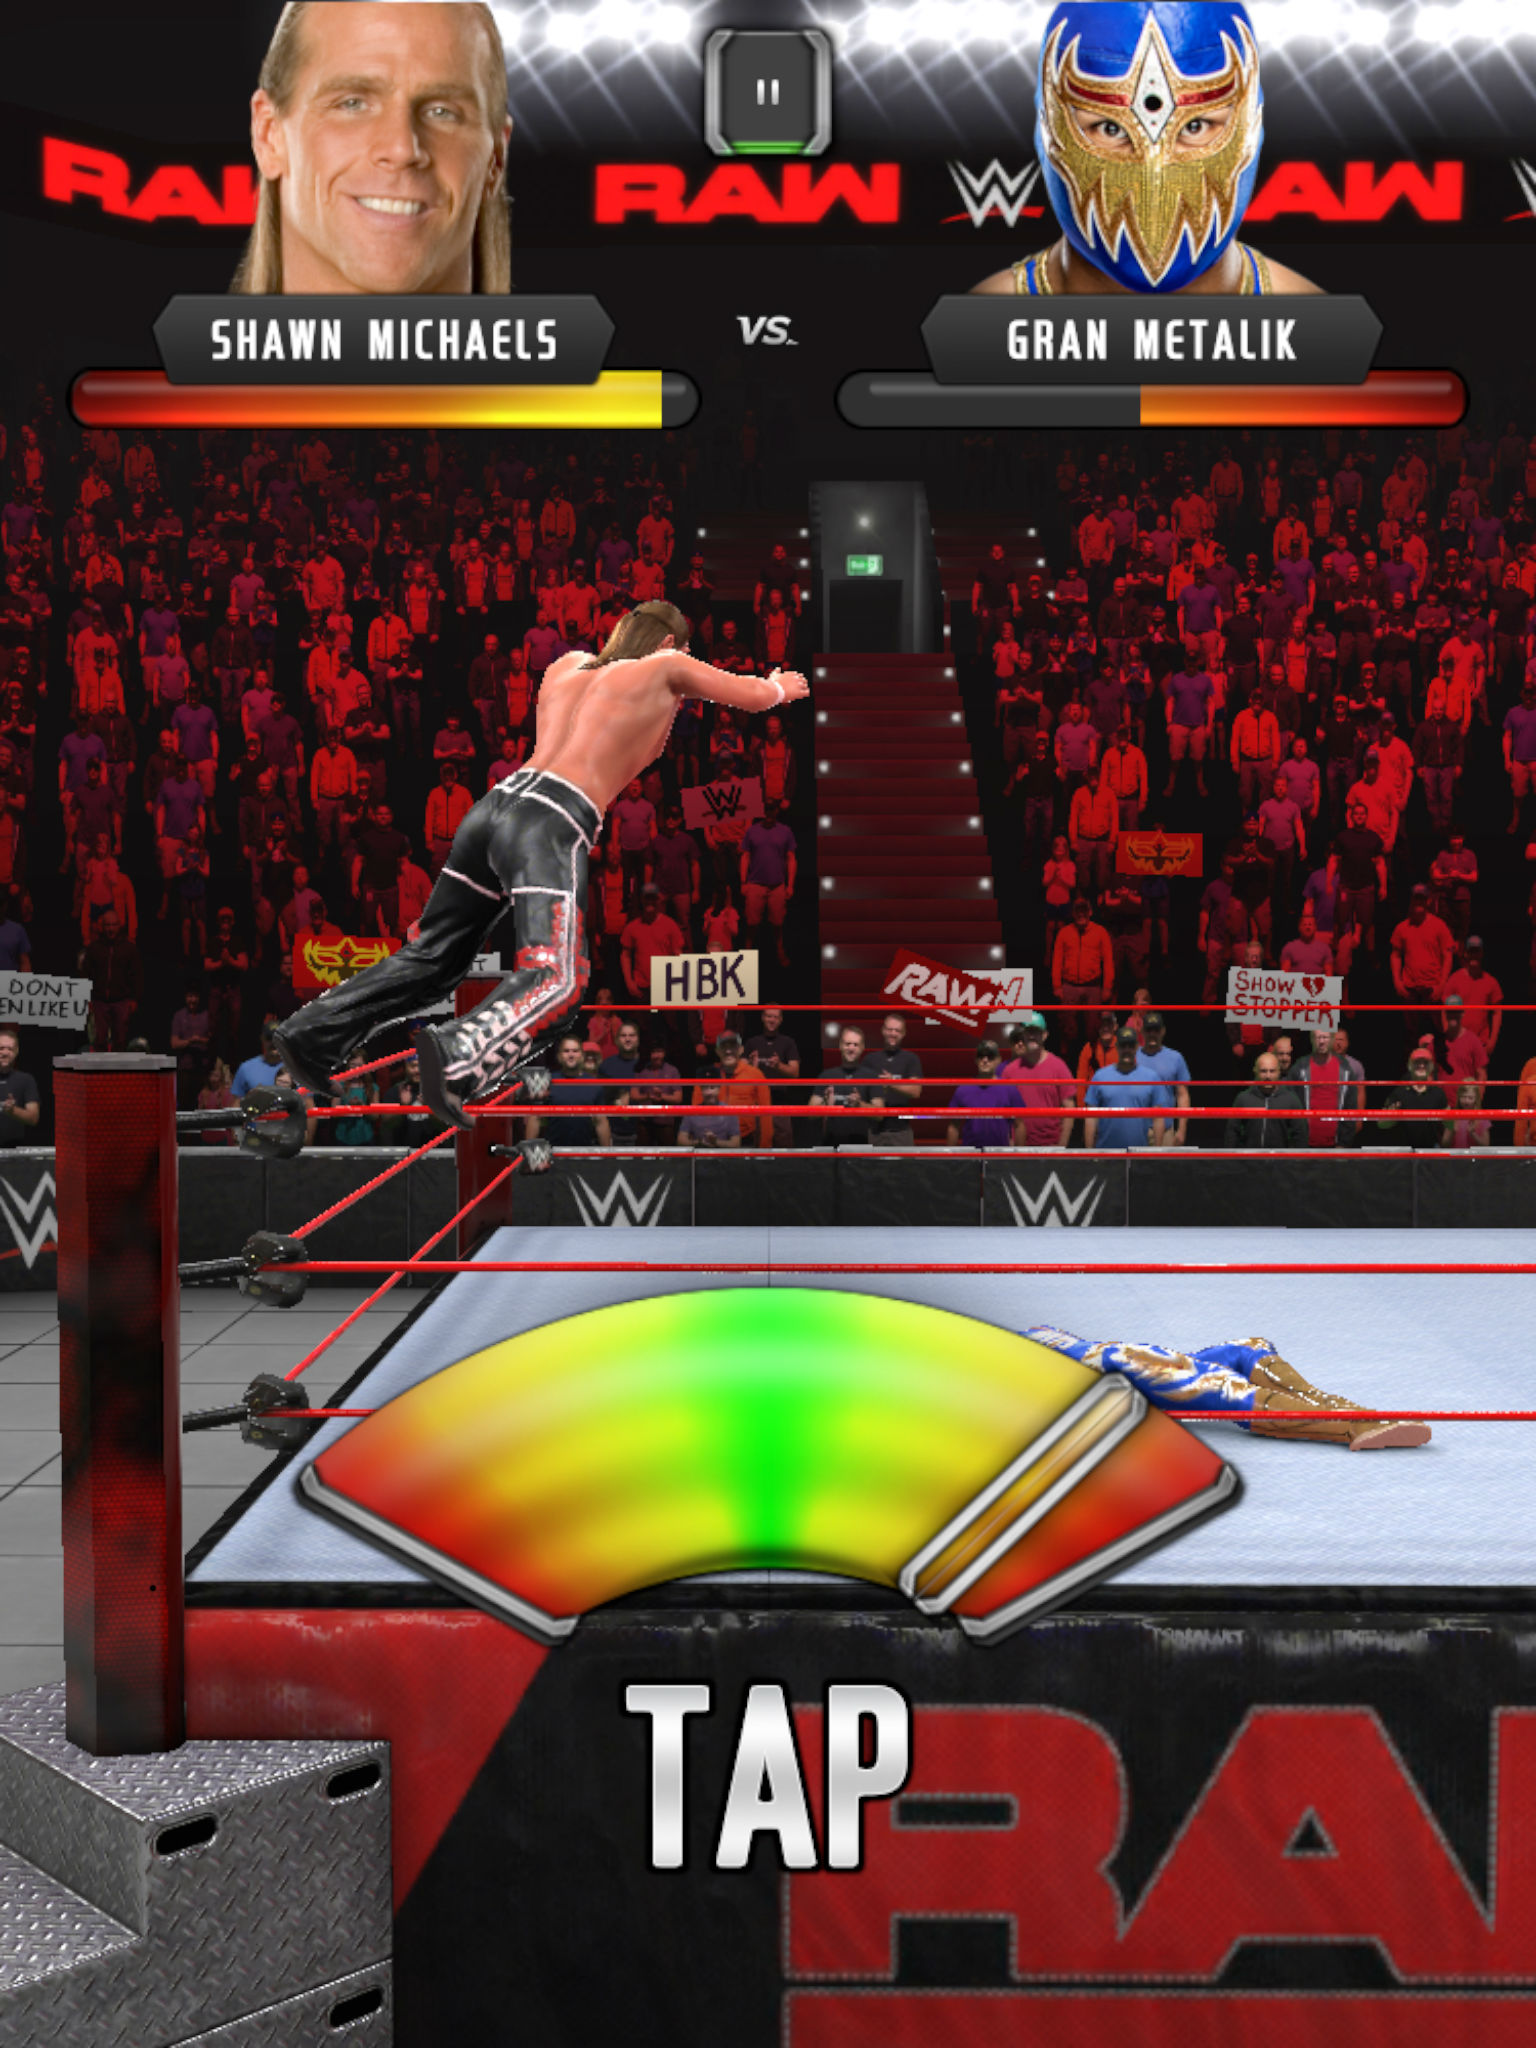 WWE Universe' Guide: Tips, Tricks and Hints to Slam Your Way